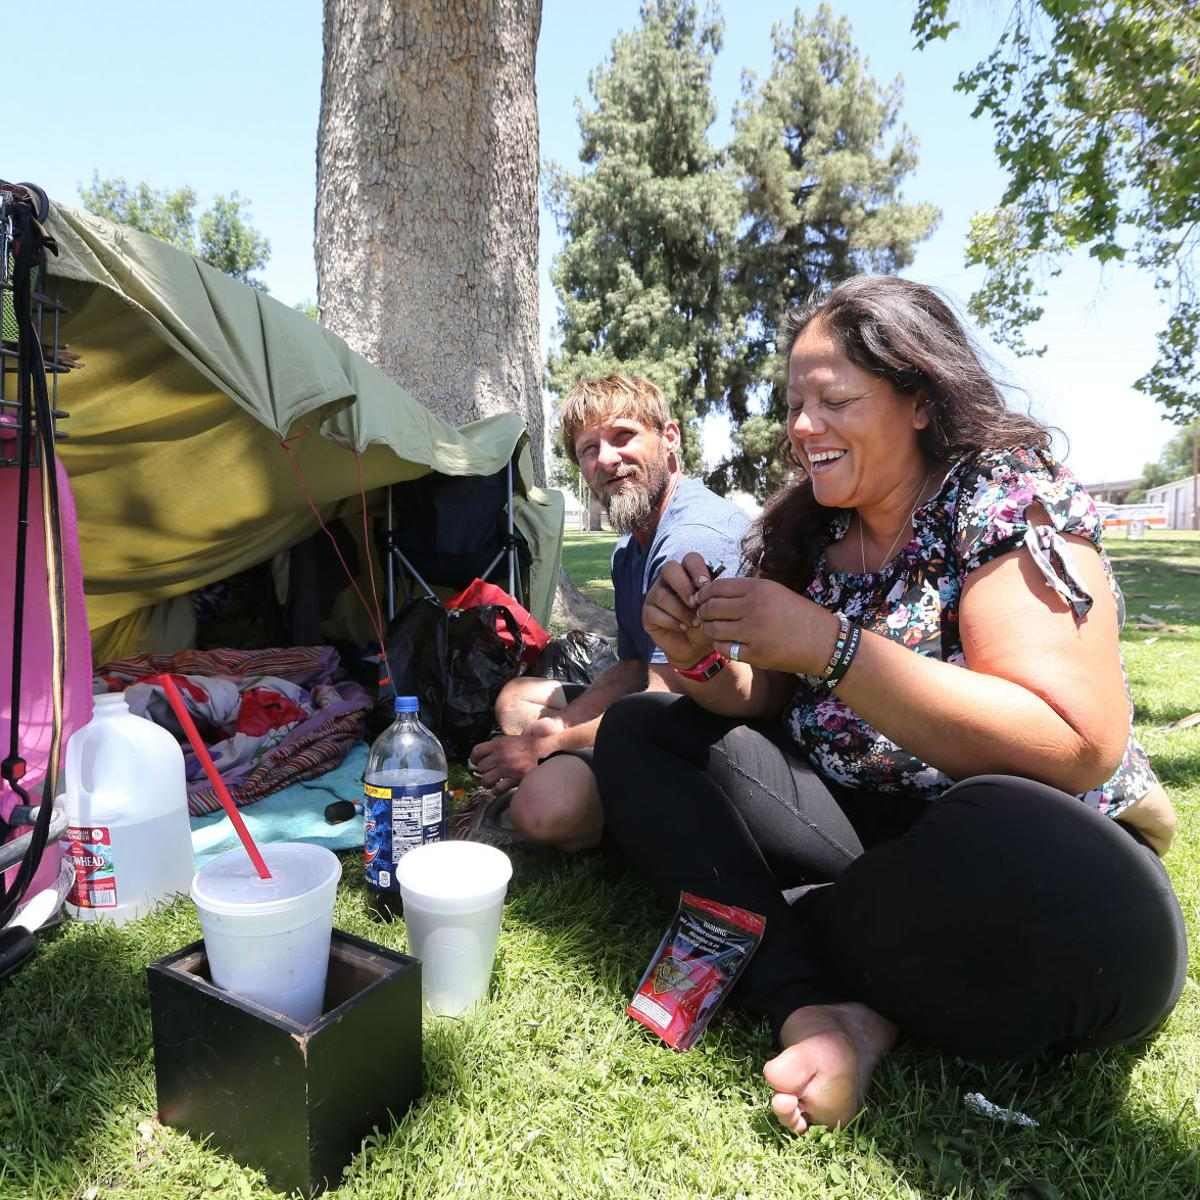 Kern County proposes homeless shelter near site that